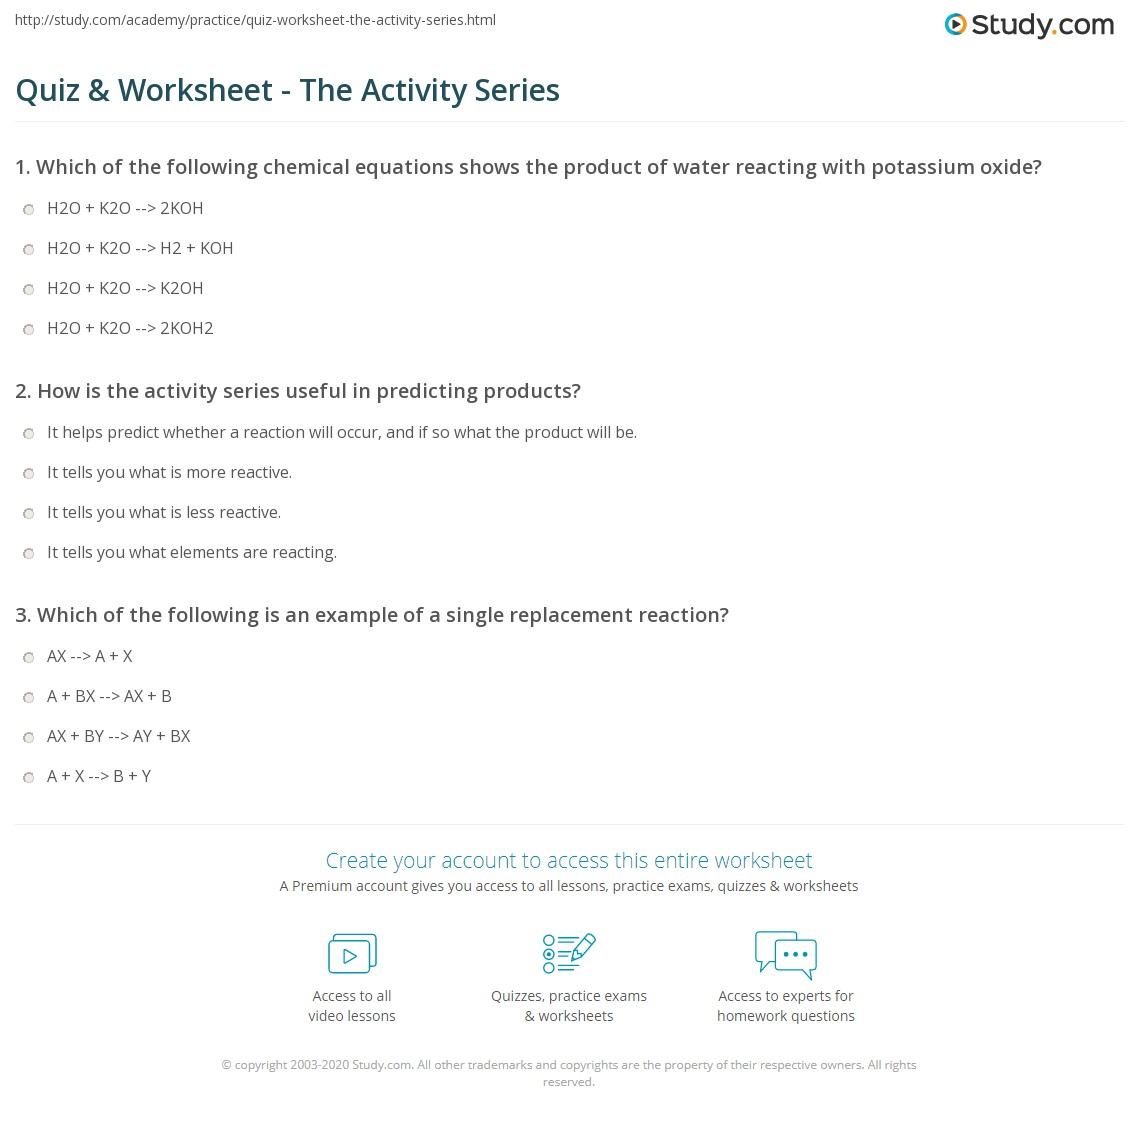 Aldiablosus  Nice Quiz Amp Worksheet  The Activity Series  Studycom With Hot Print The Activity Series Predicting Products Of Single Displacement Reactions Worksheet With Adorable Number Grid Puzzles Worksheets Also Division Worksheets For Th Graders In Addition Triangle Worksheets Geometry And Fractions Multiplication Worksheets As Well As Ledger Line Worksheet Additionally Parenthetical Citation Worksheet From Studycom With Aldiablosus  Hot Quiz Amp Worksheet  The Activity Series  Studycom With Adorable Print The Activity Series Predicting Products Of Single Displacement Reactions Worksheet And Nice Number Grid Puzzles Worksheets Also Division Worksheets For Th Graders In Addition Triangle Worksheets Geometry From Studycom